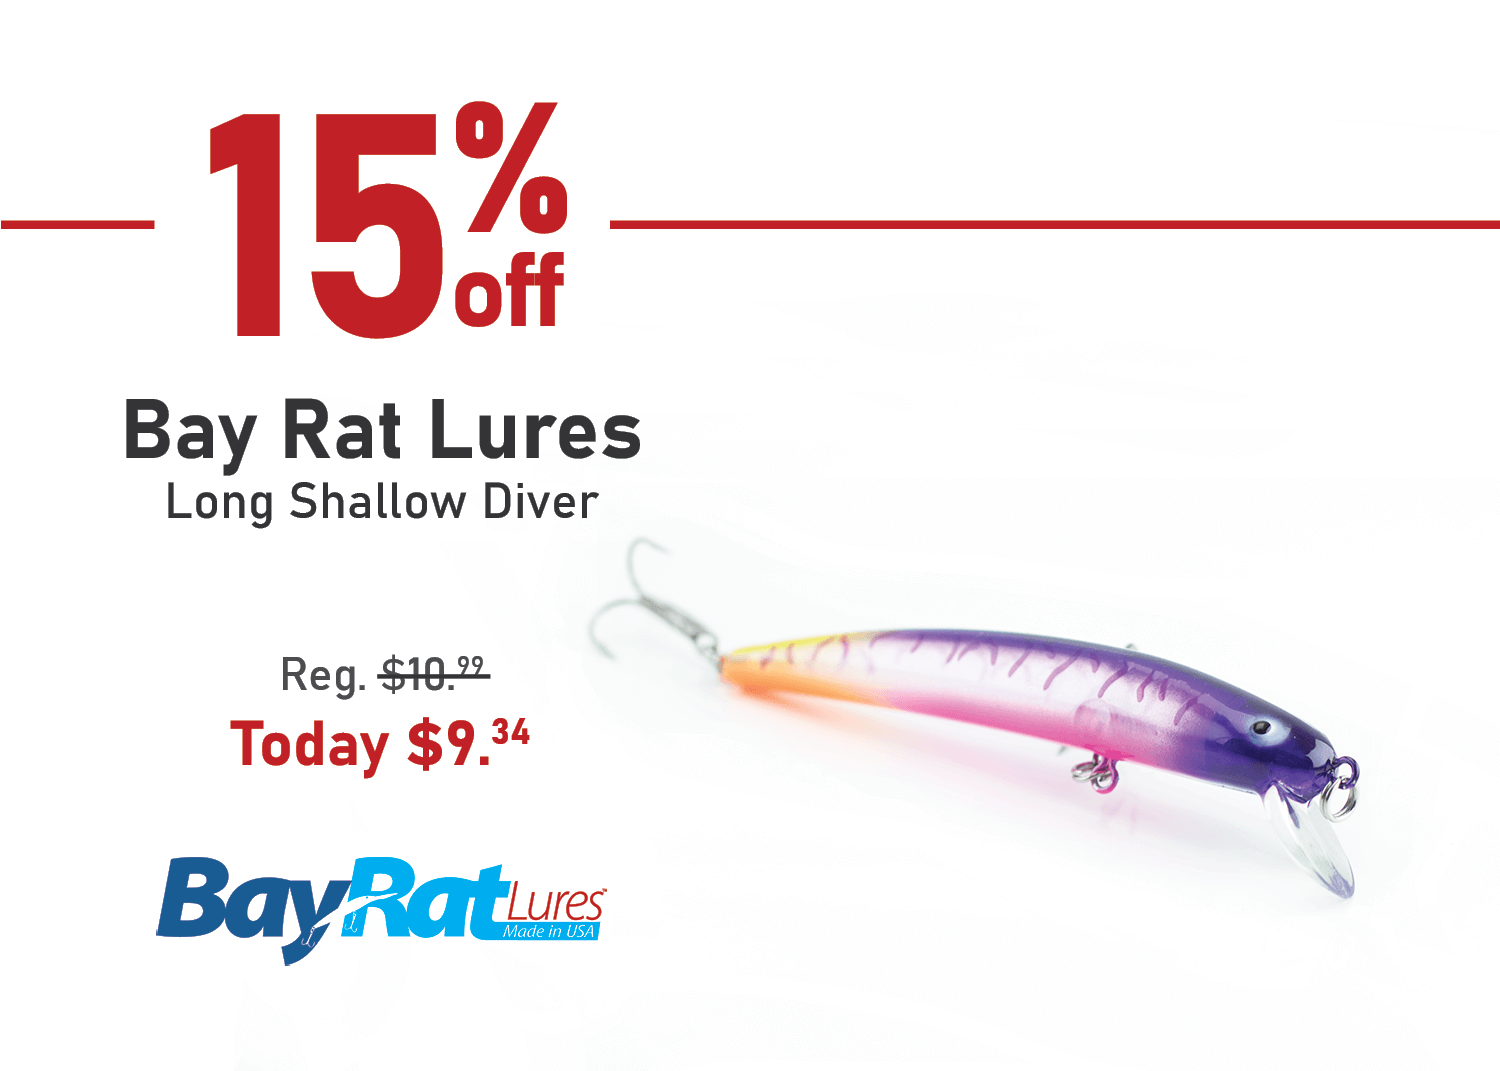 Save 15% on the Bay Rat Lures Long Shallow Diver